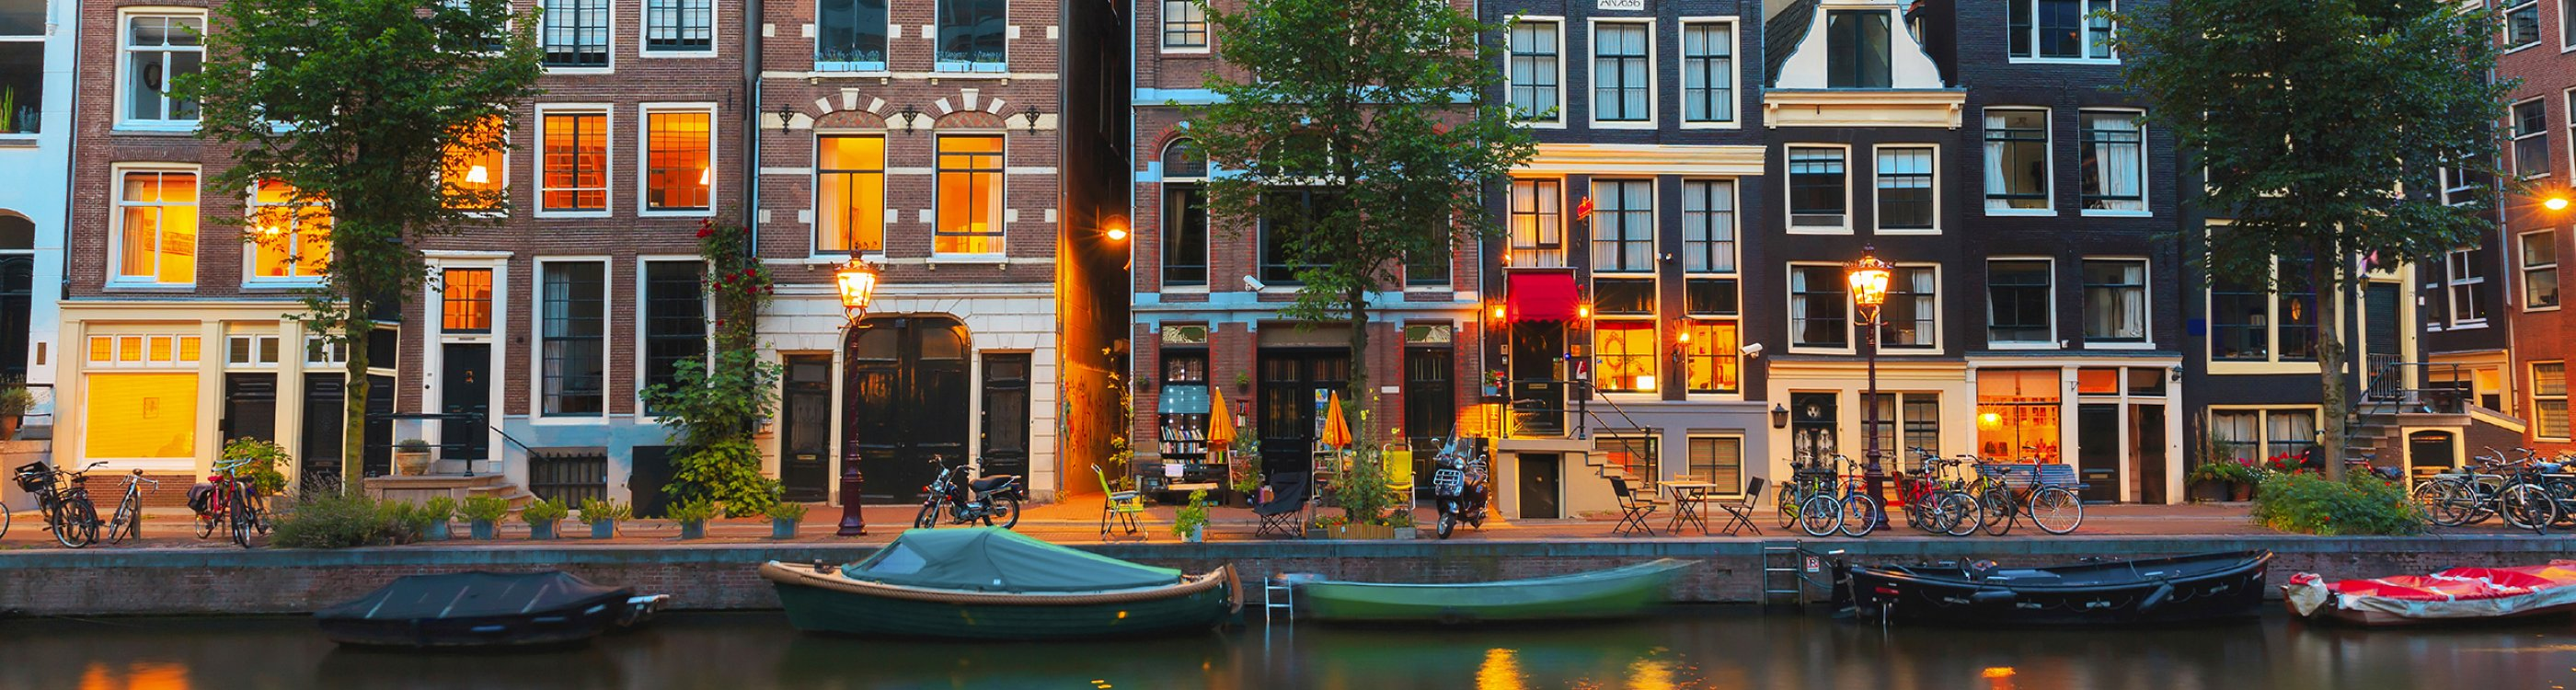 Amsterdam Pays-Bas Canaux Terrasse